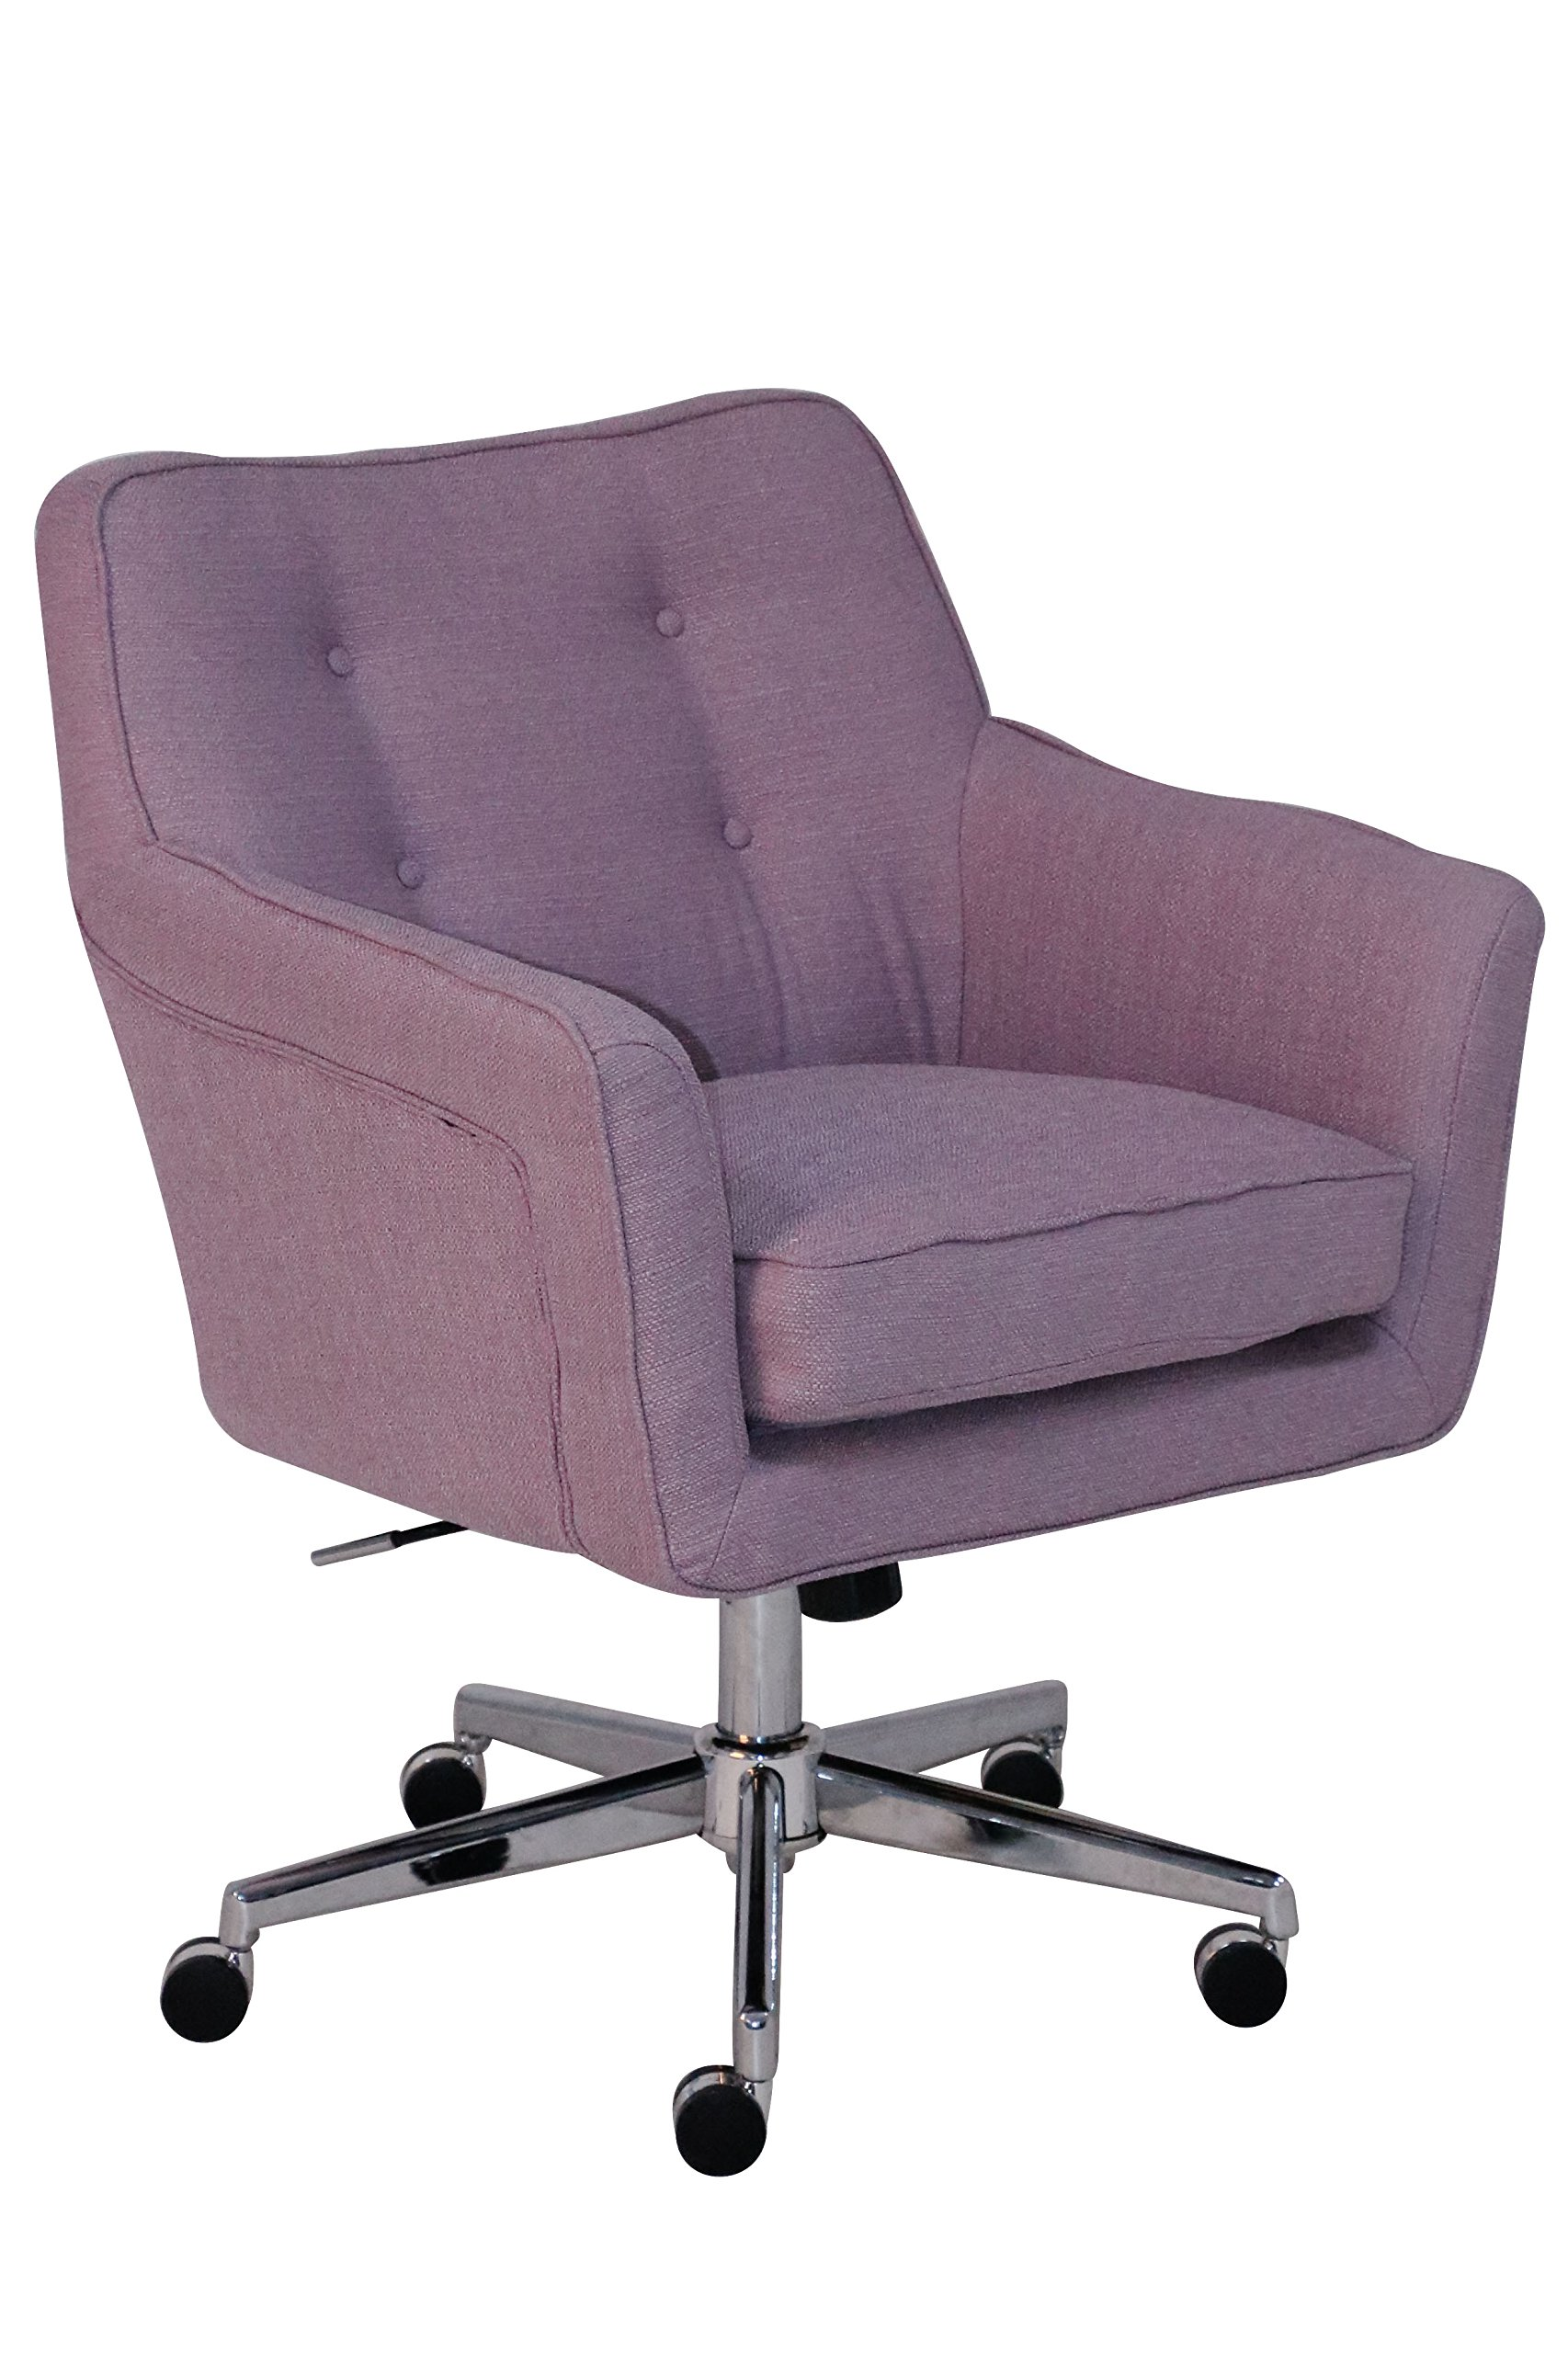 Serta Style Ashland Home Office Chair, Fresh Lilac Twill Fabric